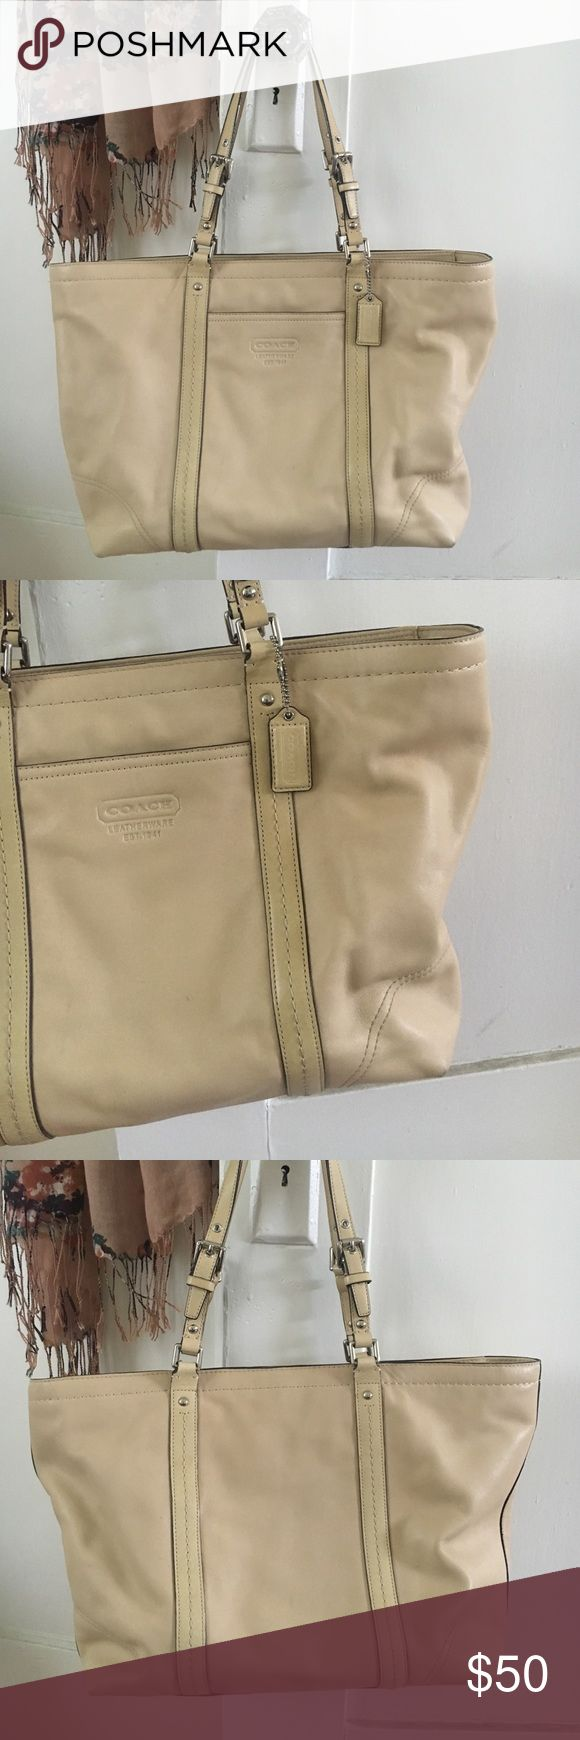 coach tote bag great leather coach bag. perfect for school, travel, work and more. Coach Bags Totes